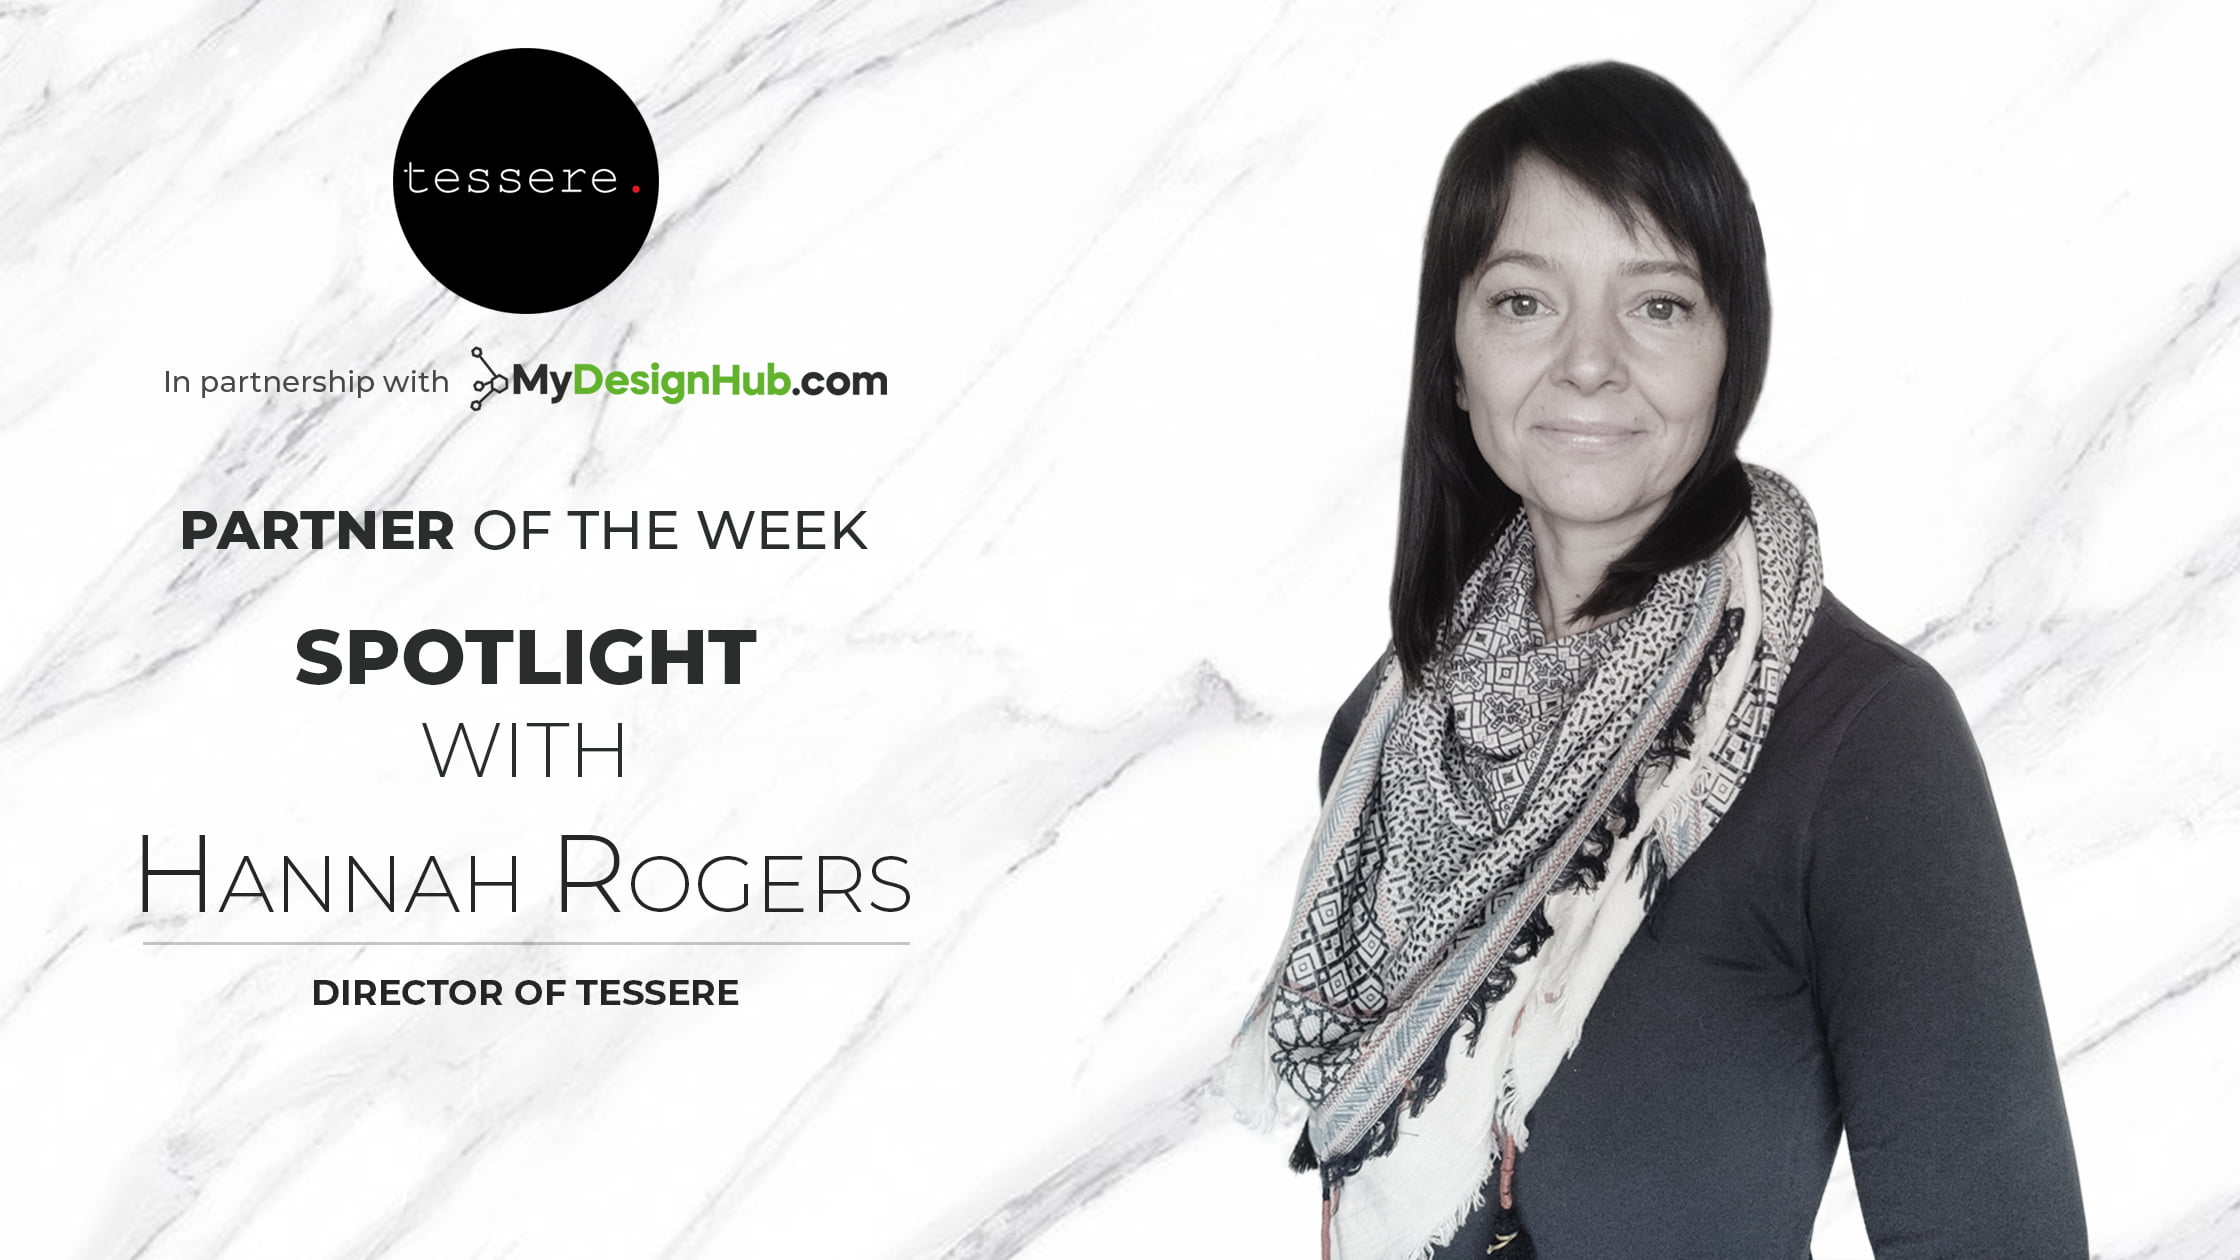 5 in 5 Minutes Spotlight with Hannah Rogers…